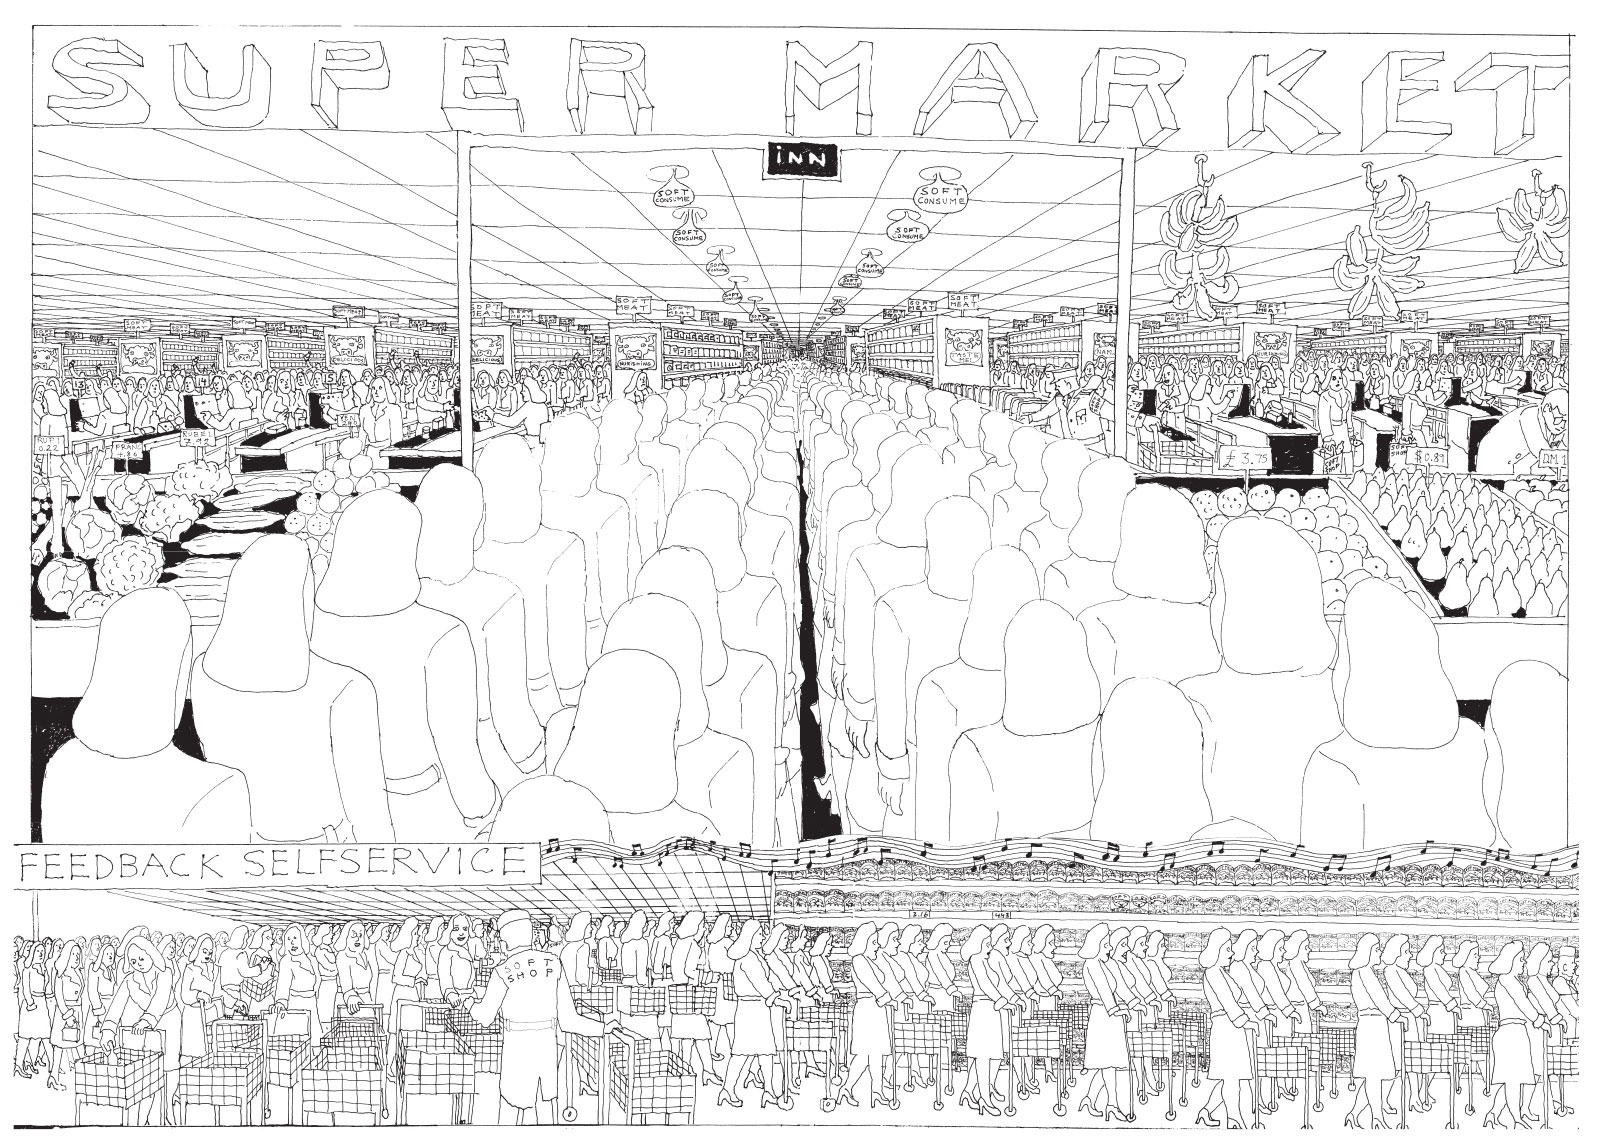 A spread from Soft City by Pushwagner; click on image to enlarge